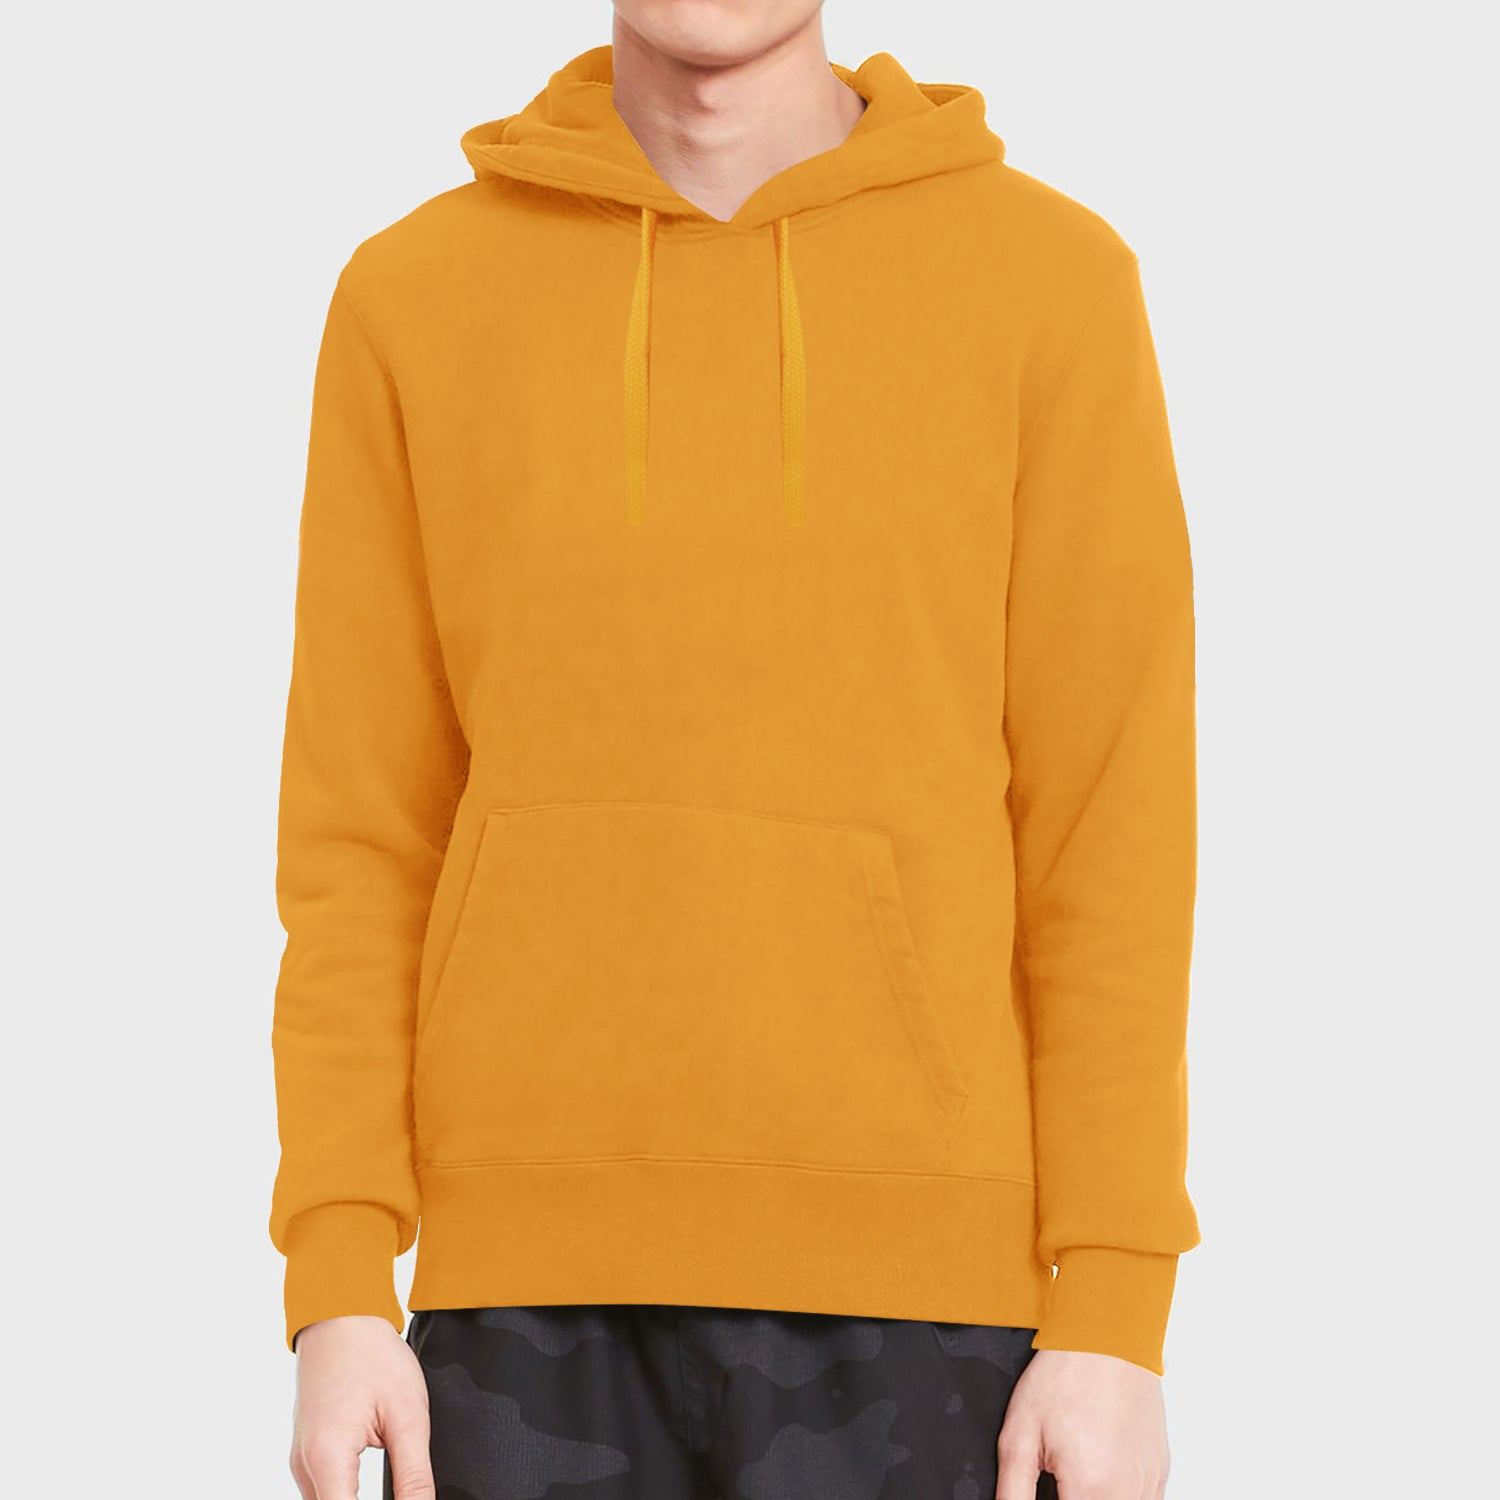 Vindaloo Fleece Pullover Hoodie For Men-Orange-BE12863